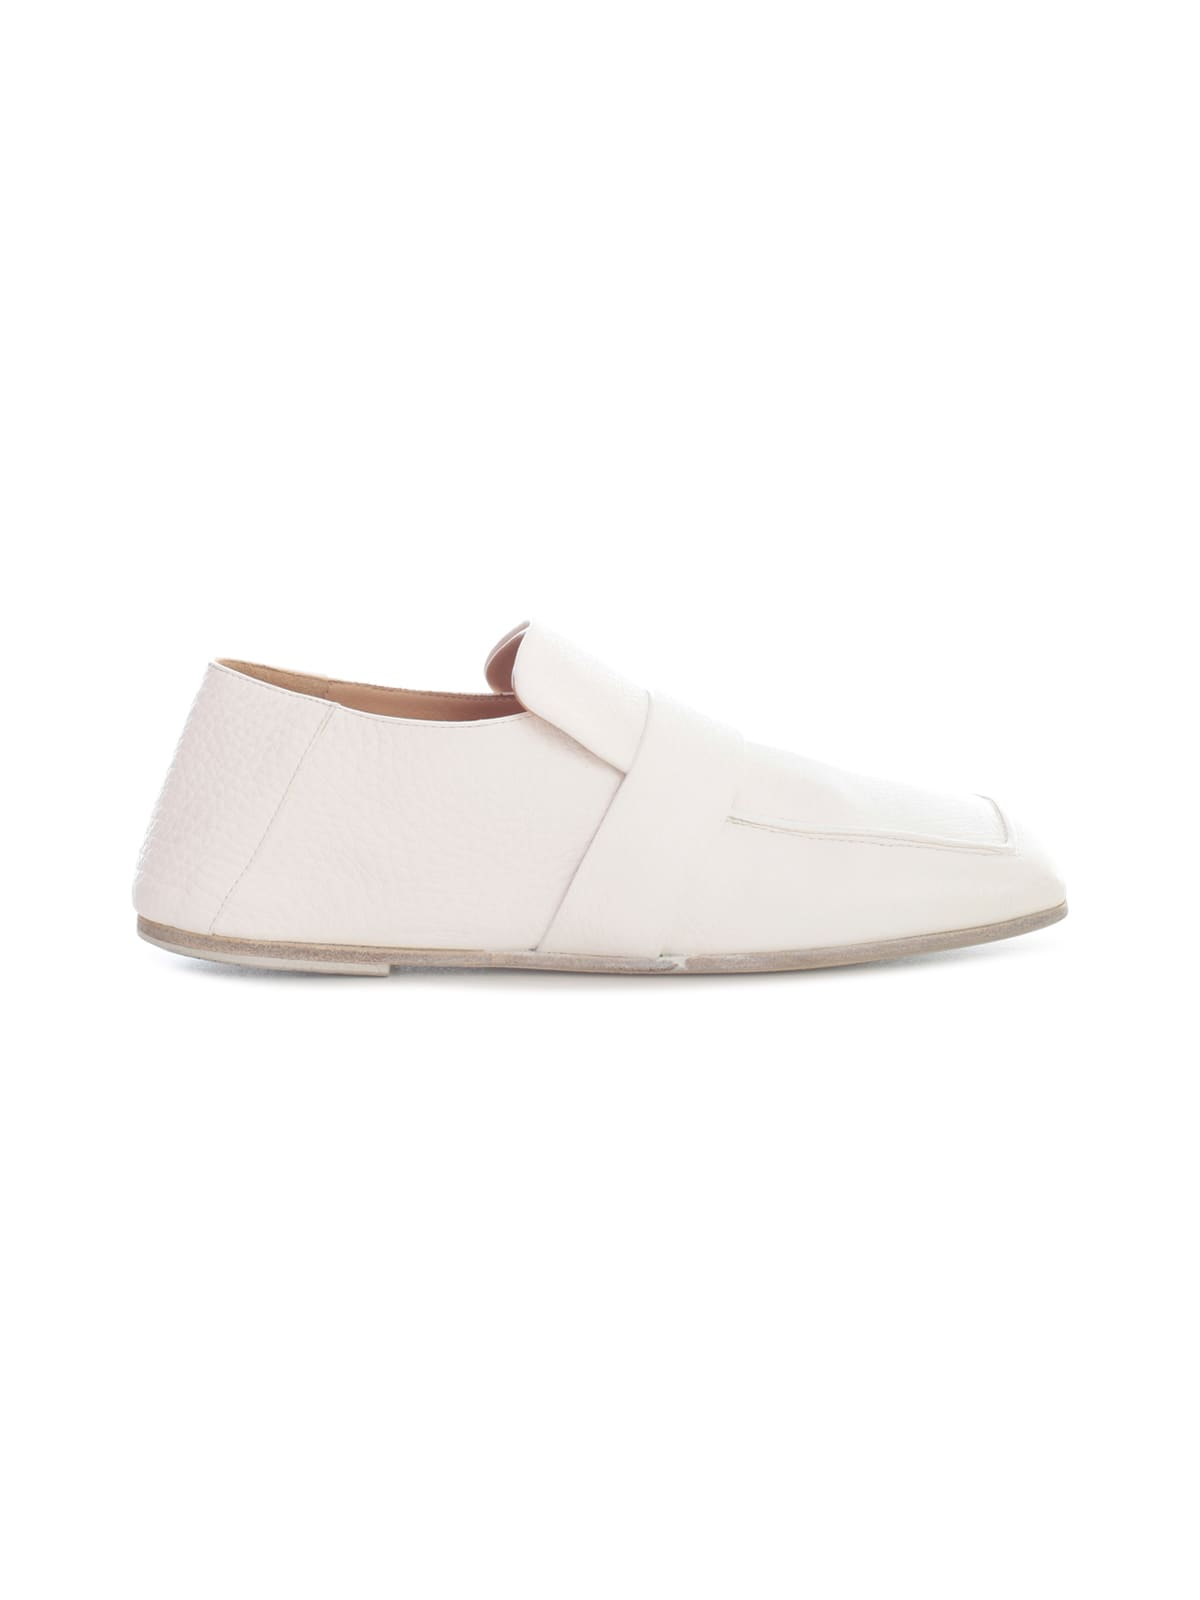 Marsell Spatolina Loafers